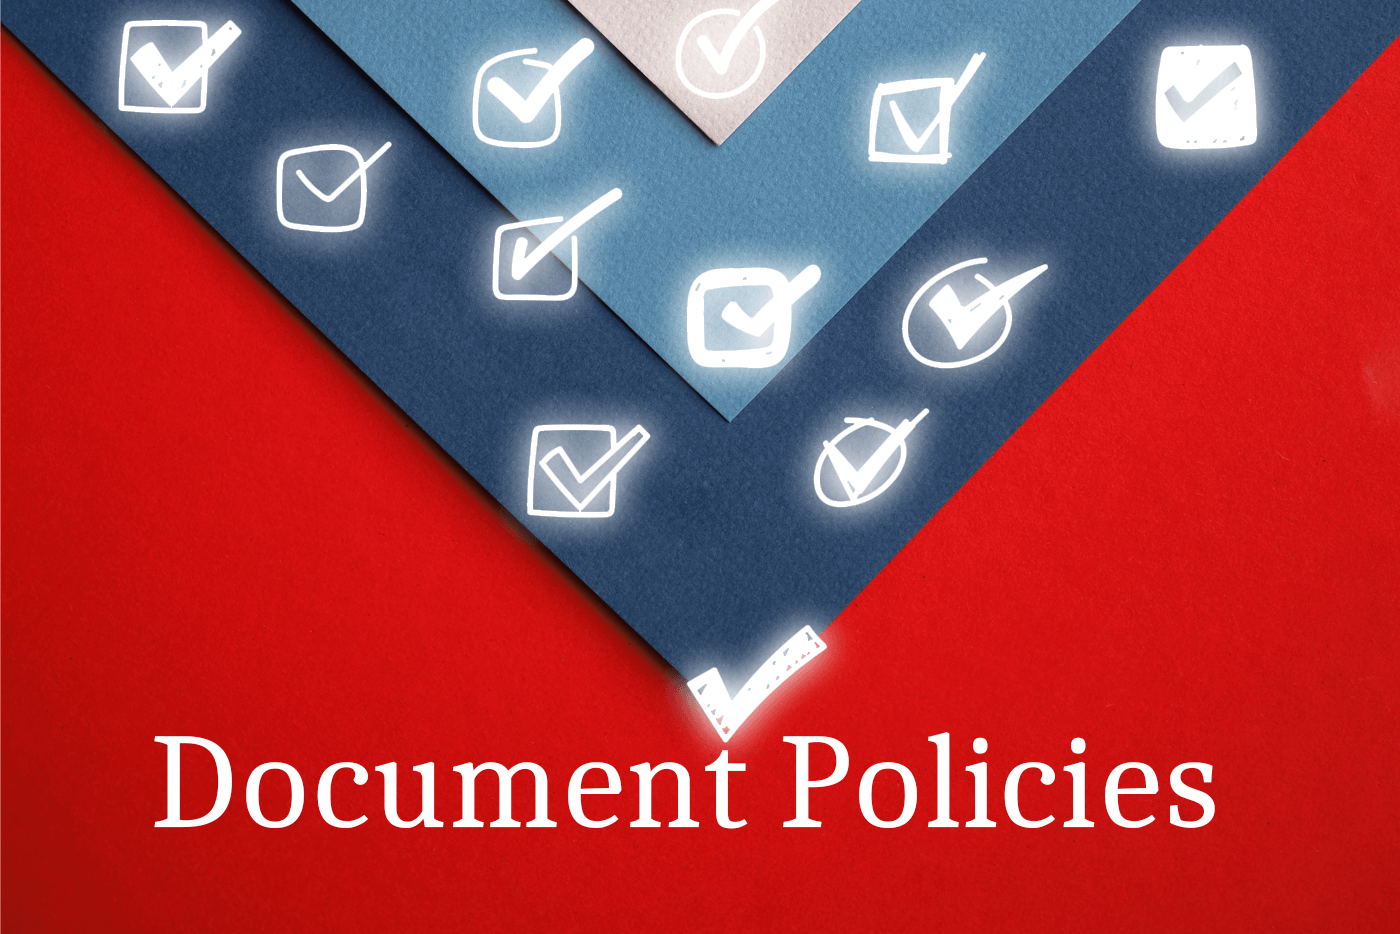 Document Policies: a new Feature Policy extension